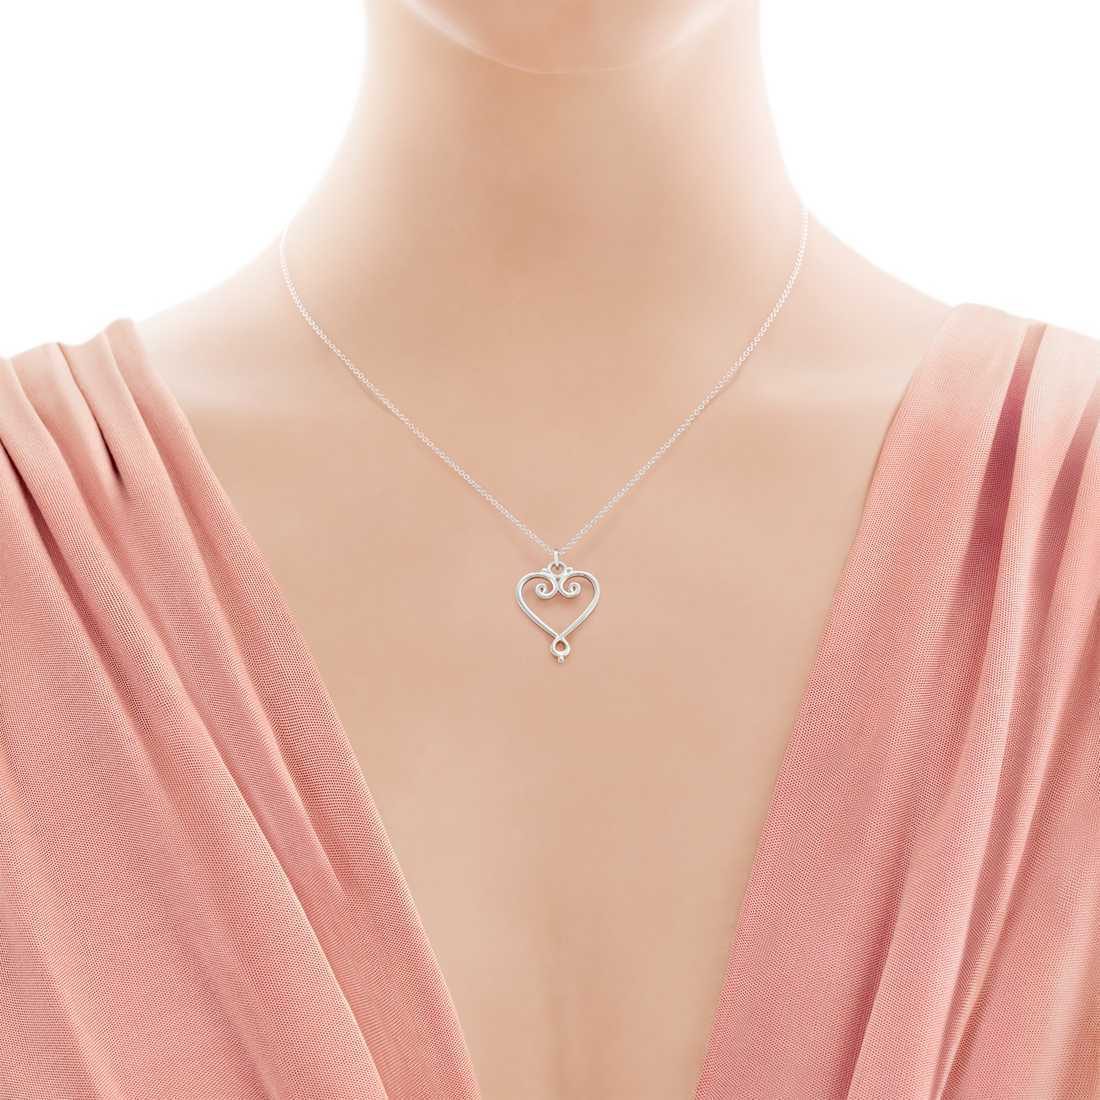 【Tiffany & Co】Paloma Picasso Goldoni Heart Pendant